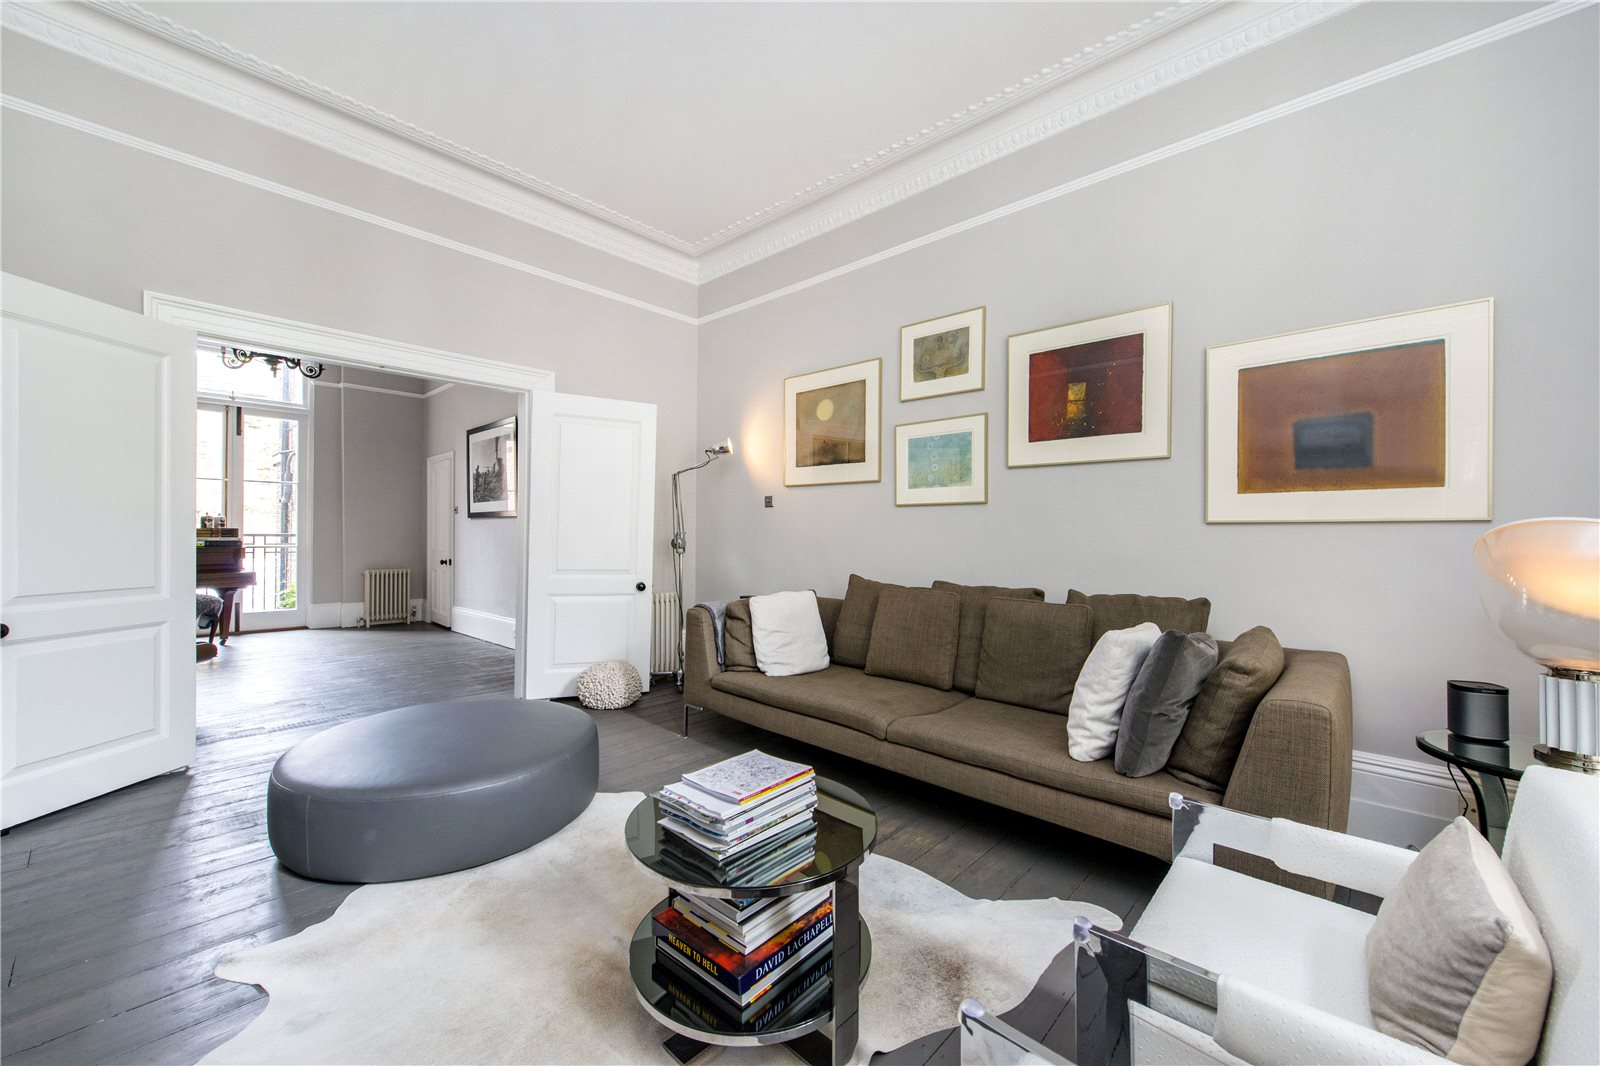 Westbourne Park Road, Notting Hill, London, W11: a luxury home for ...